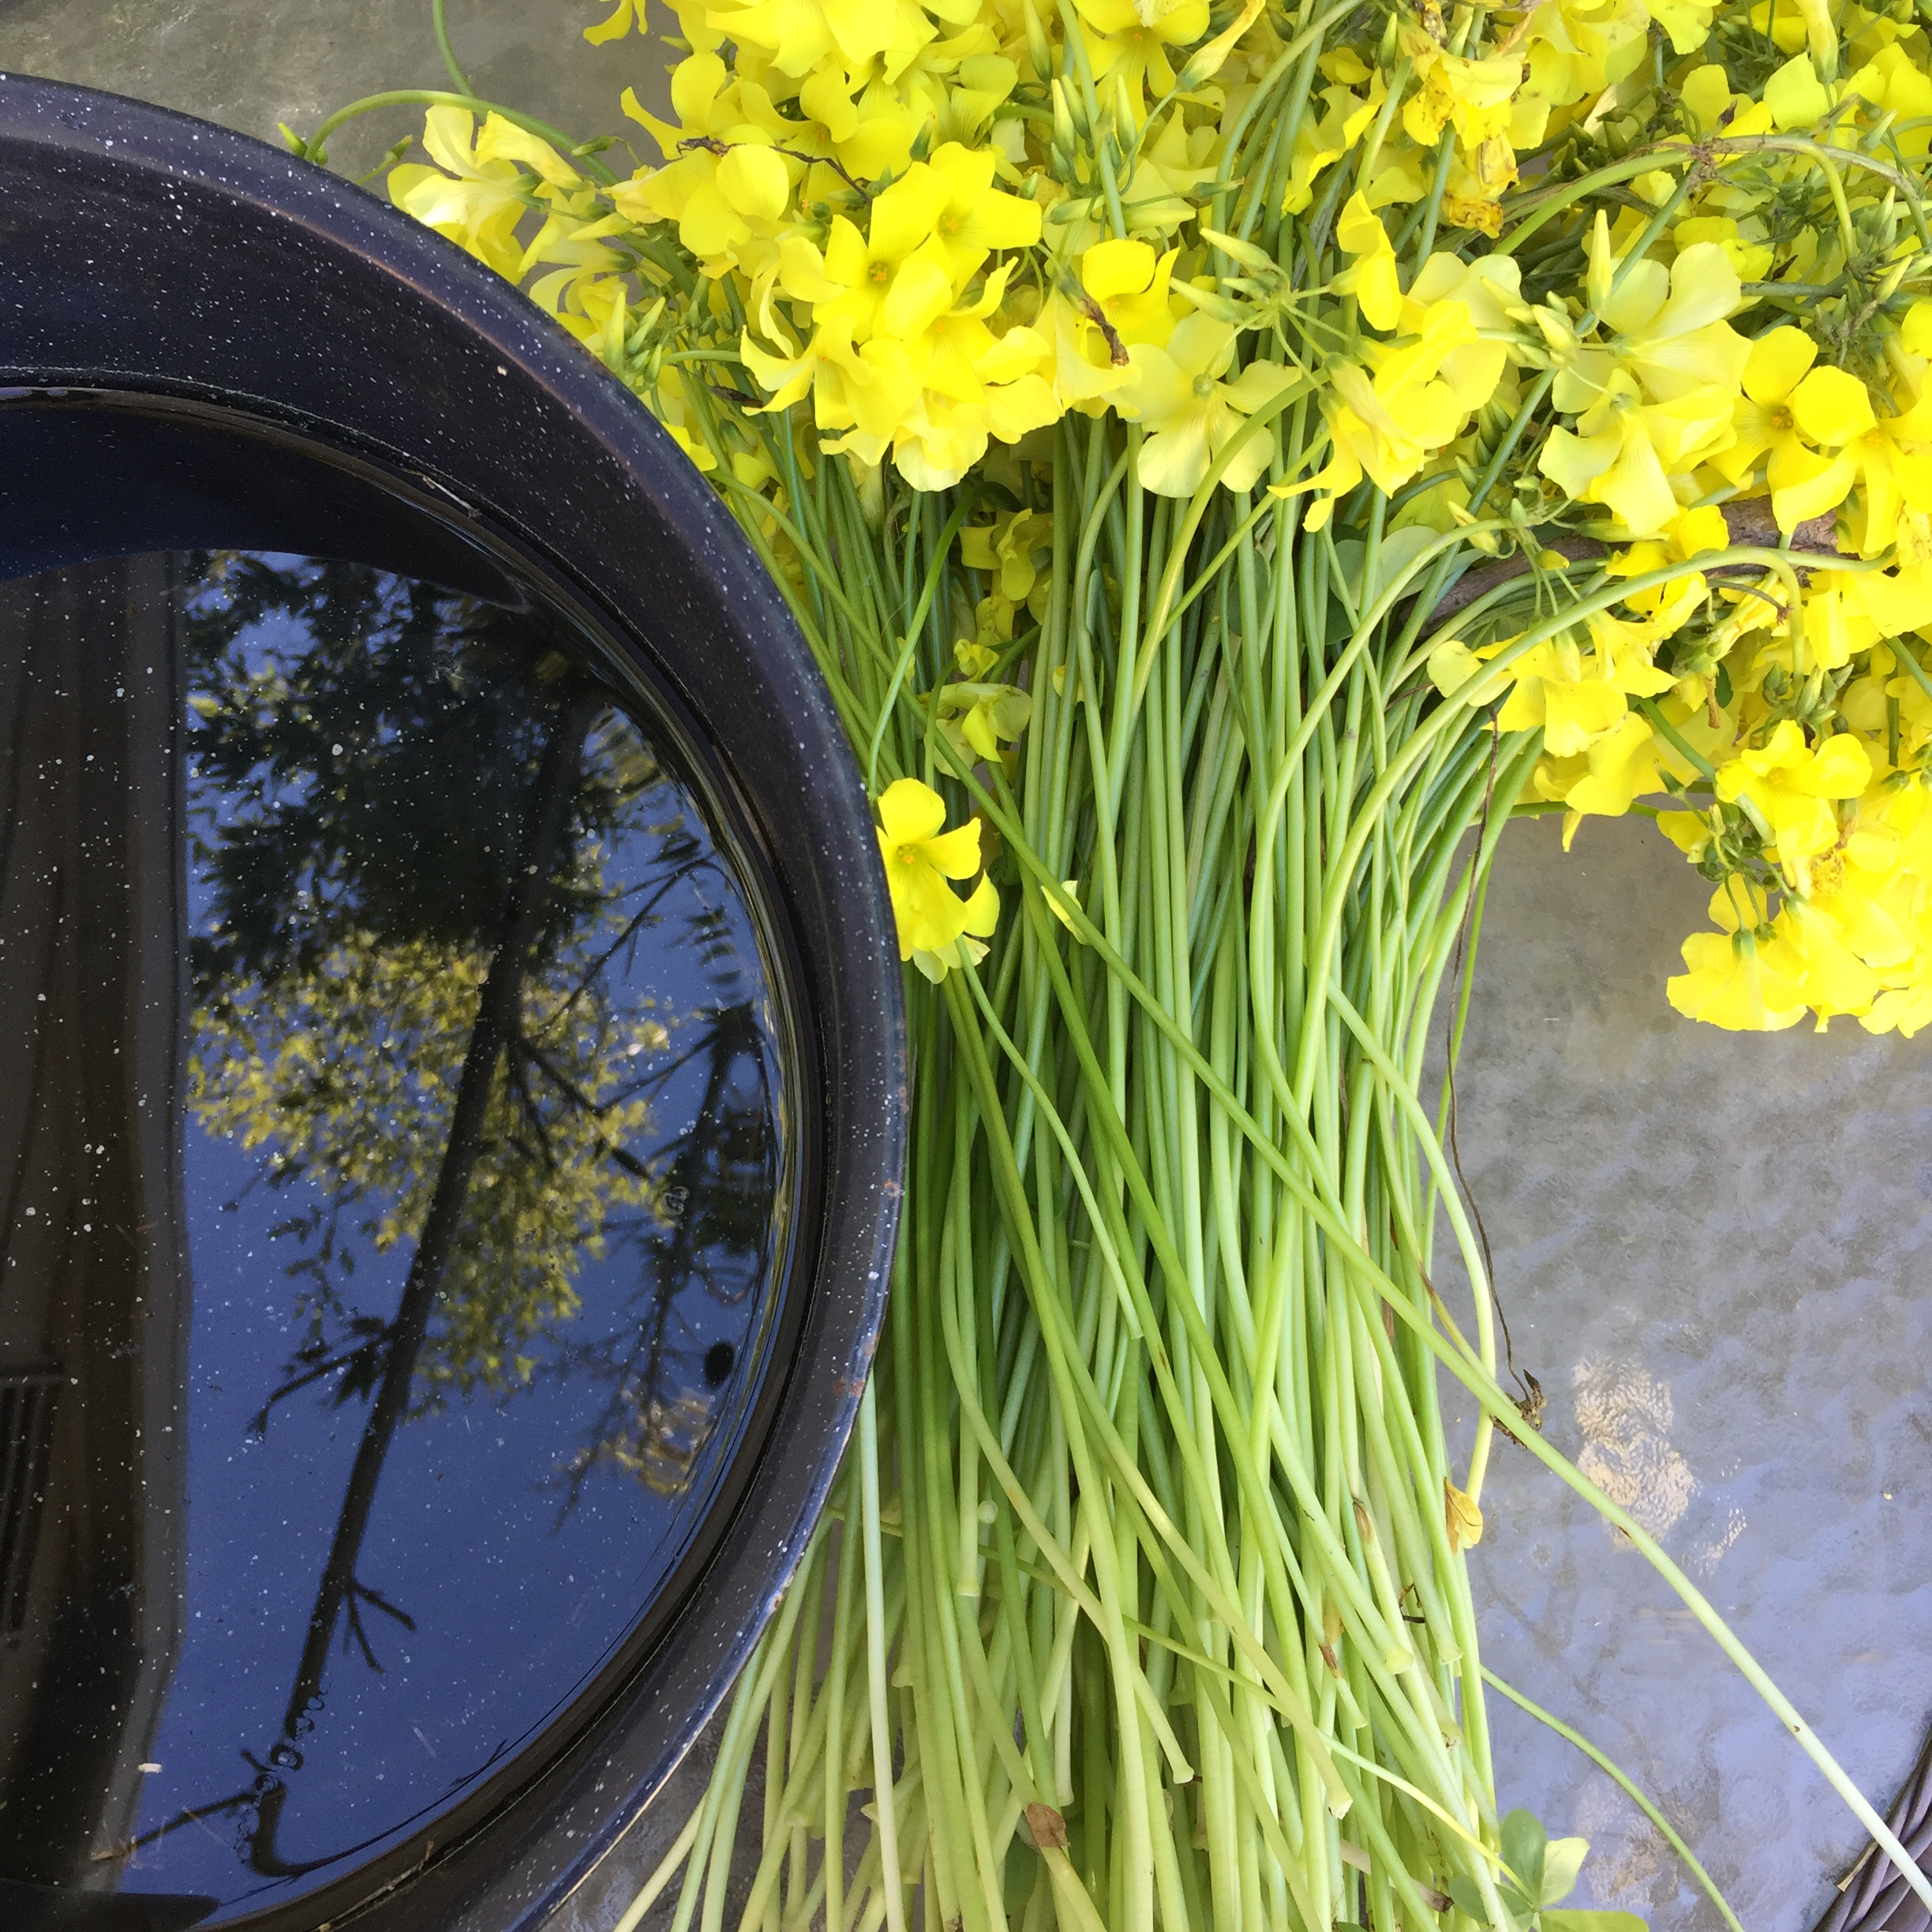 oxalis dyepot and flowers